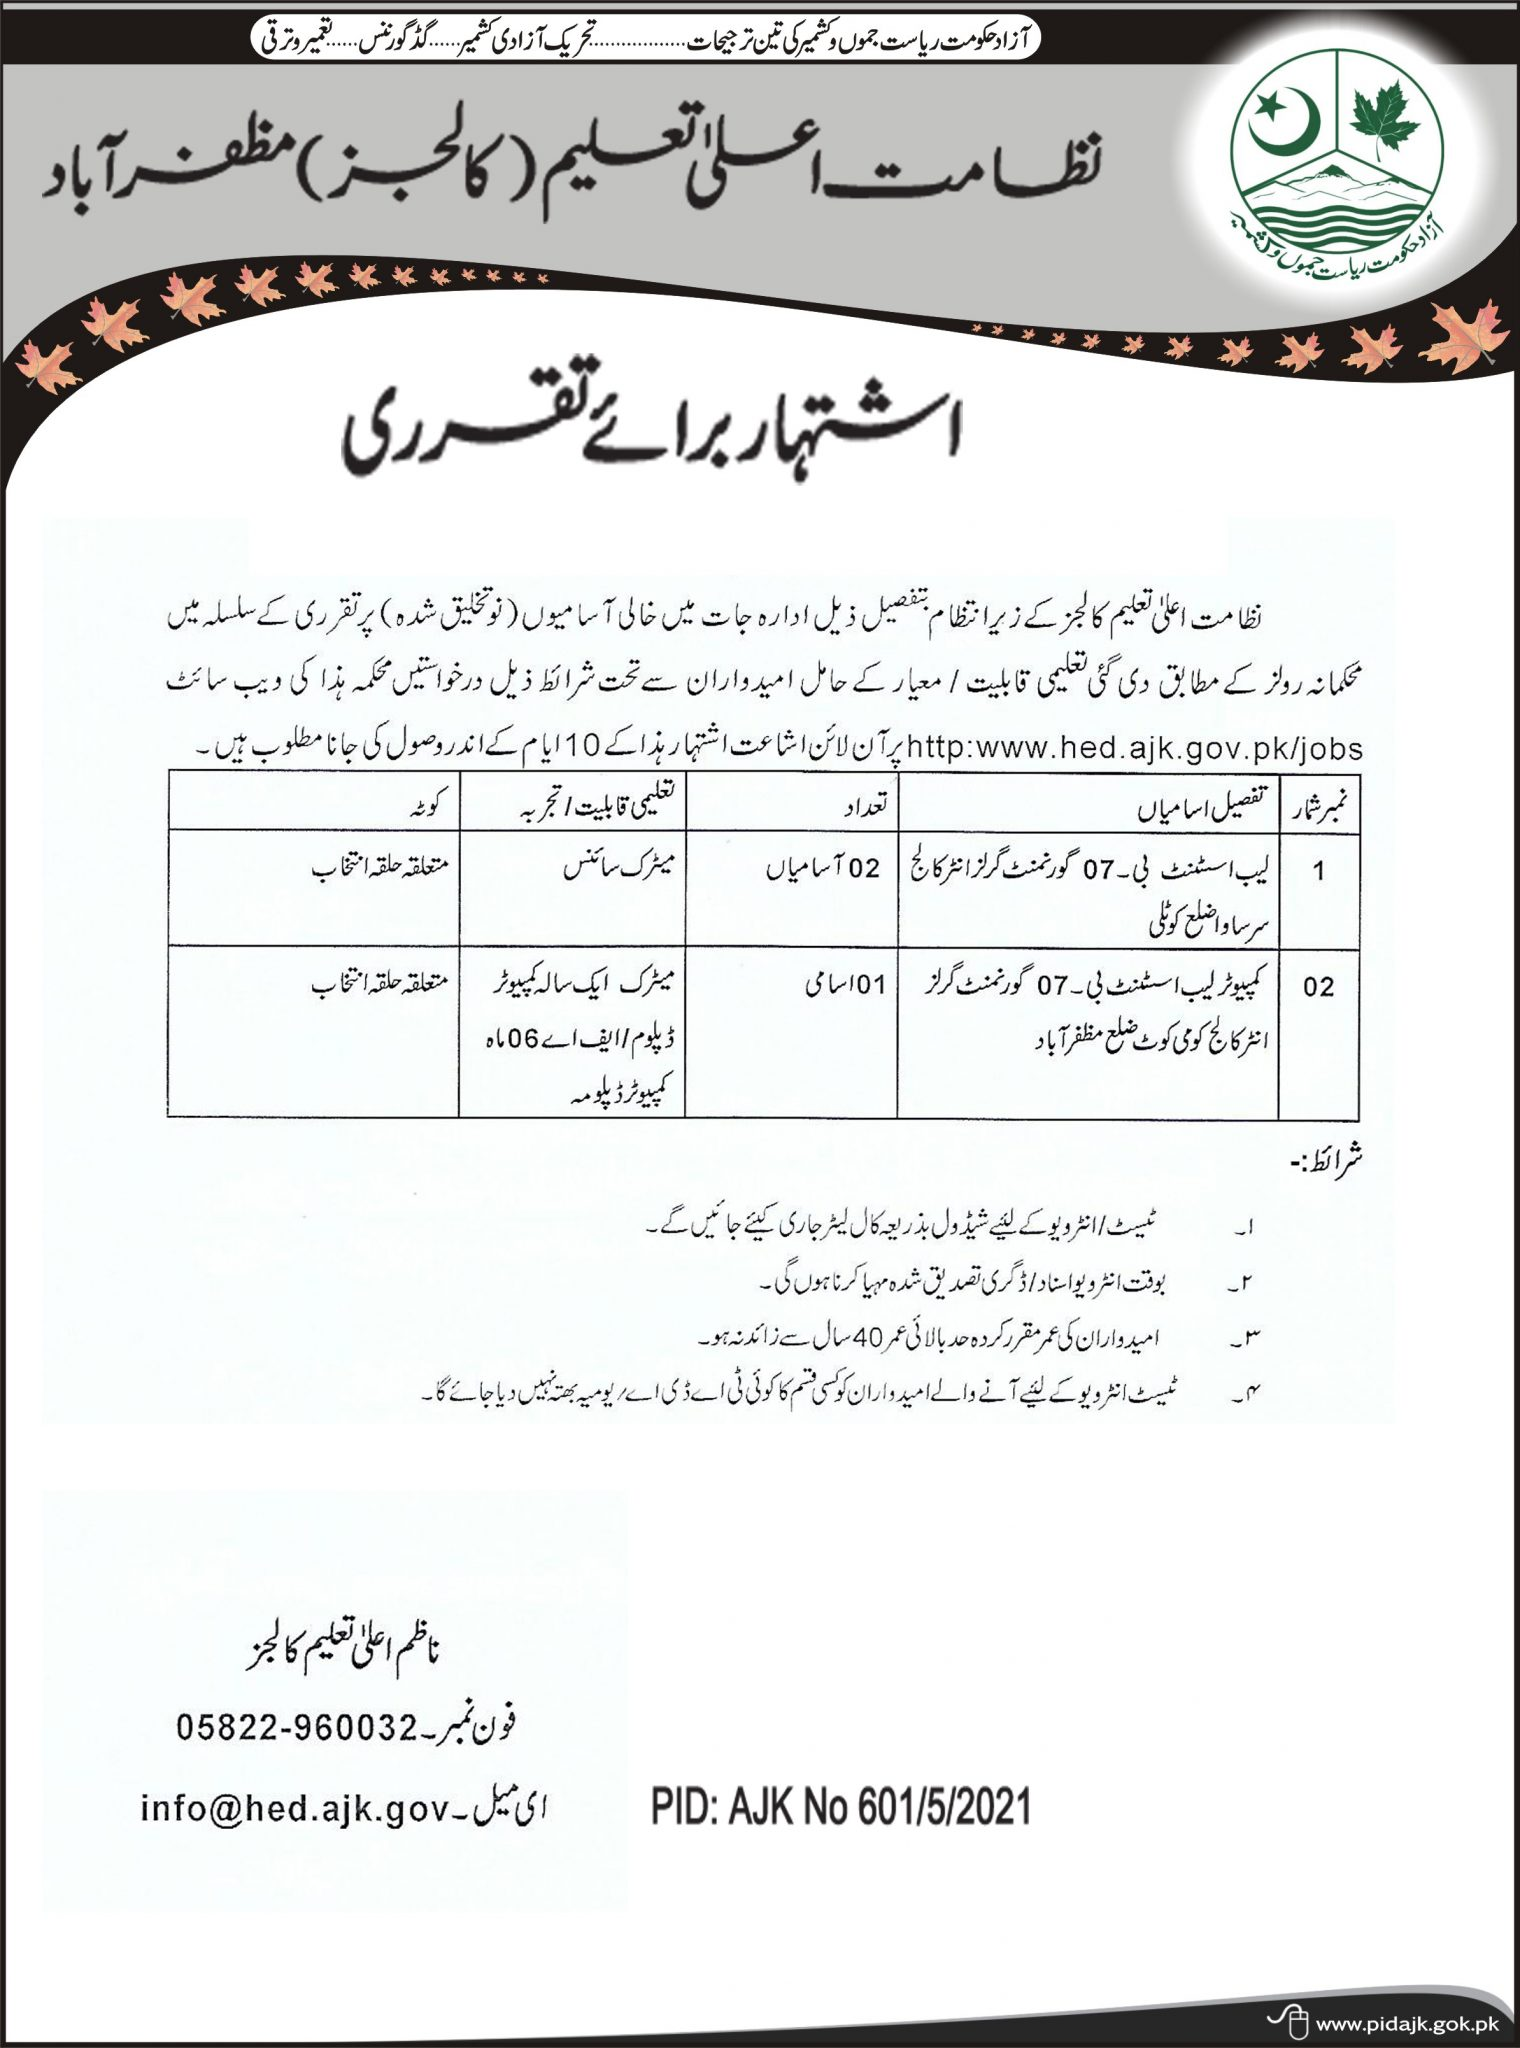 Applications are required for appointment to vacant posts in Directorate of Higher Education, Muzaffarabad